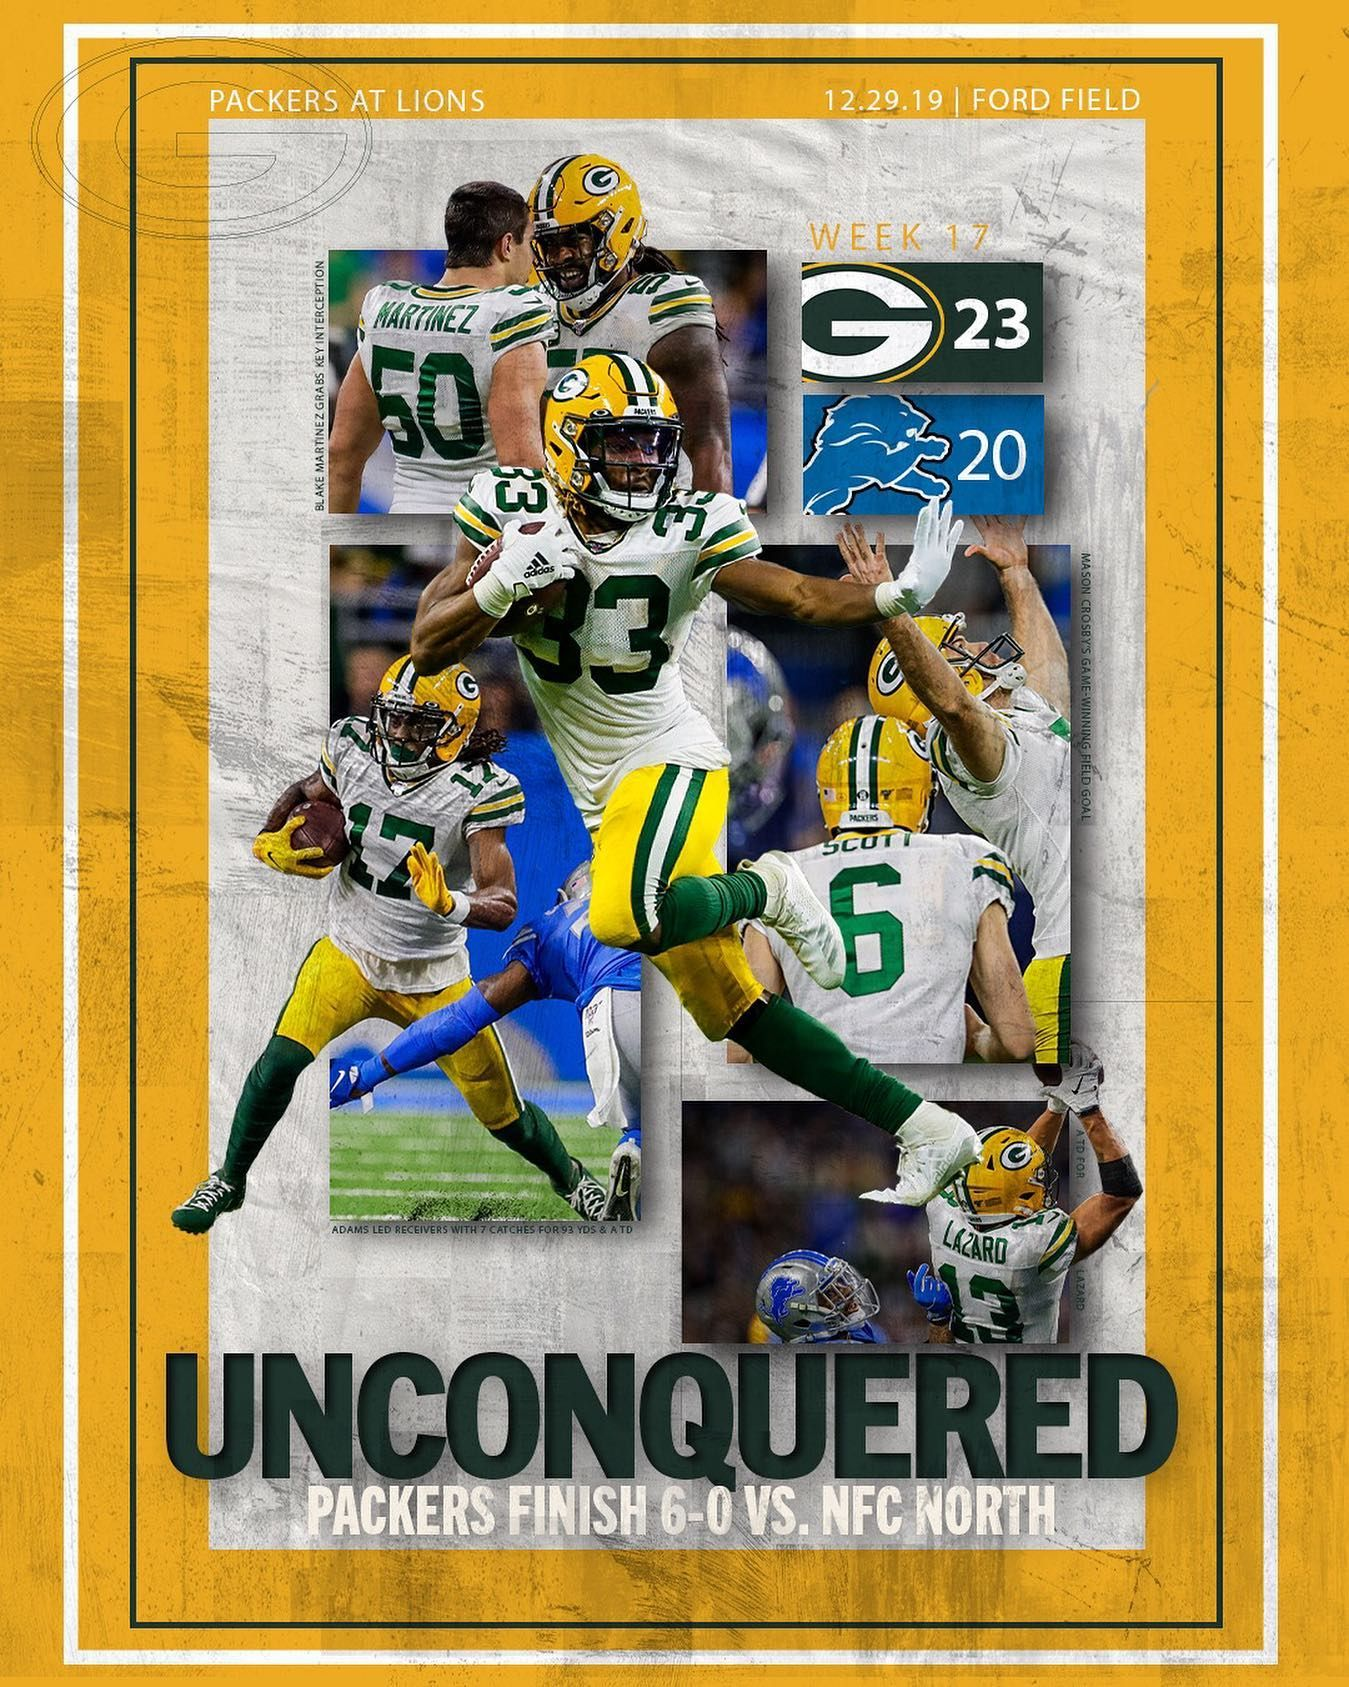 Unconquered In The Nfc North Week 17 Victory Poster Gopackgo Nfc North Green Bay Packers Packers